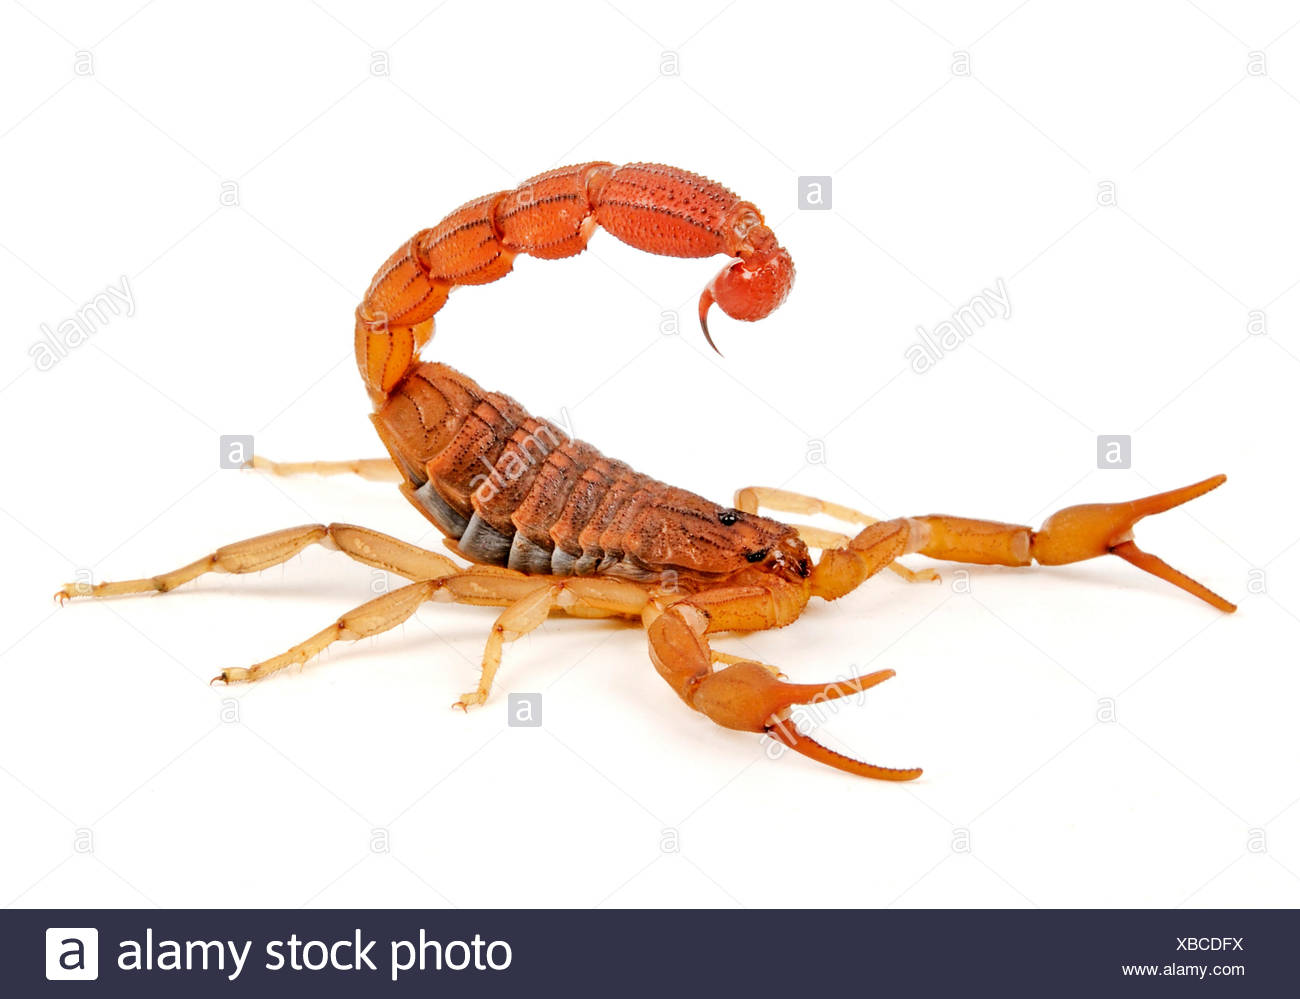 red African scorpion (Hottentotta hottentotta), parthenogenetic reproducing scorpion from Africa, probably the most venomous scorpion worldwide - Stock Image